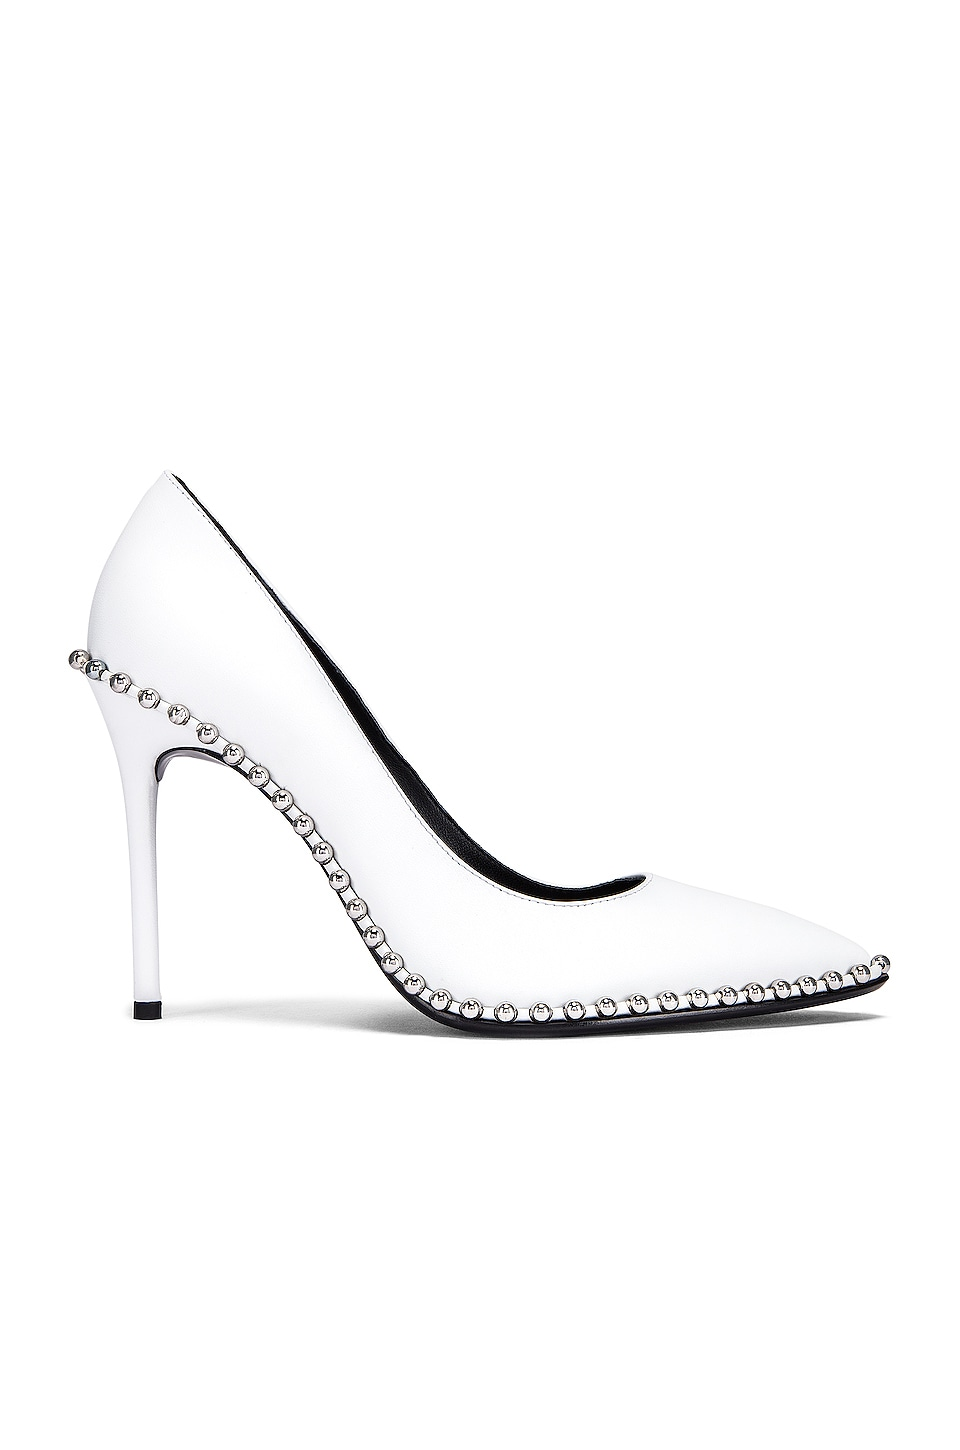 Alexander Wang Rie Heel in White